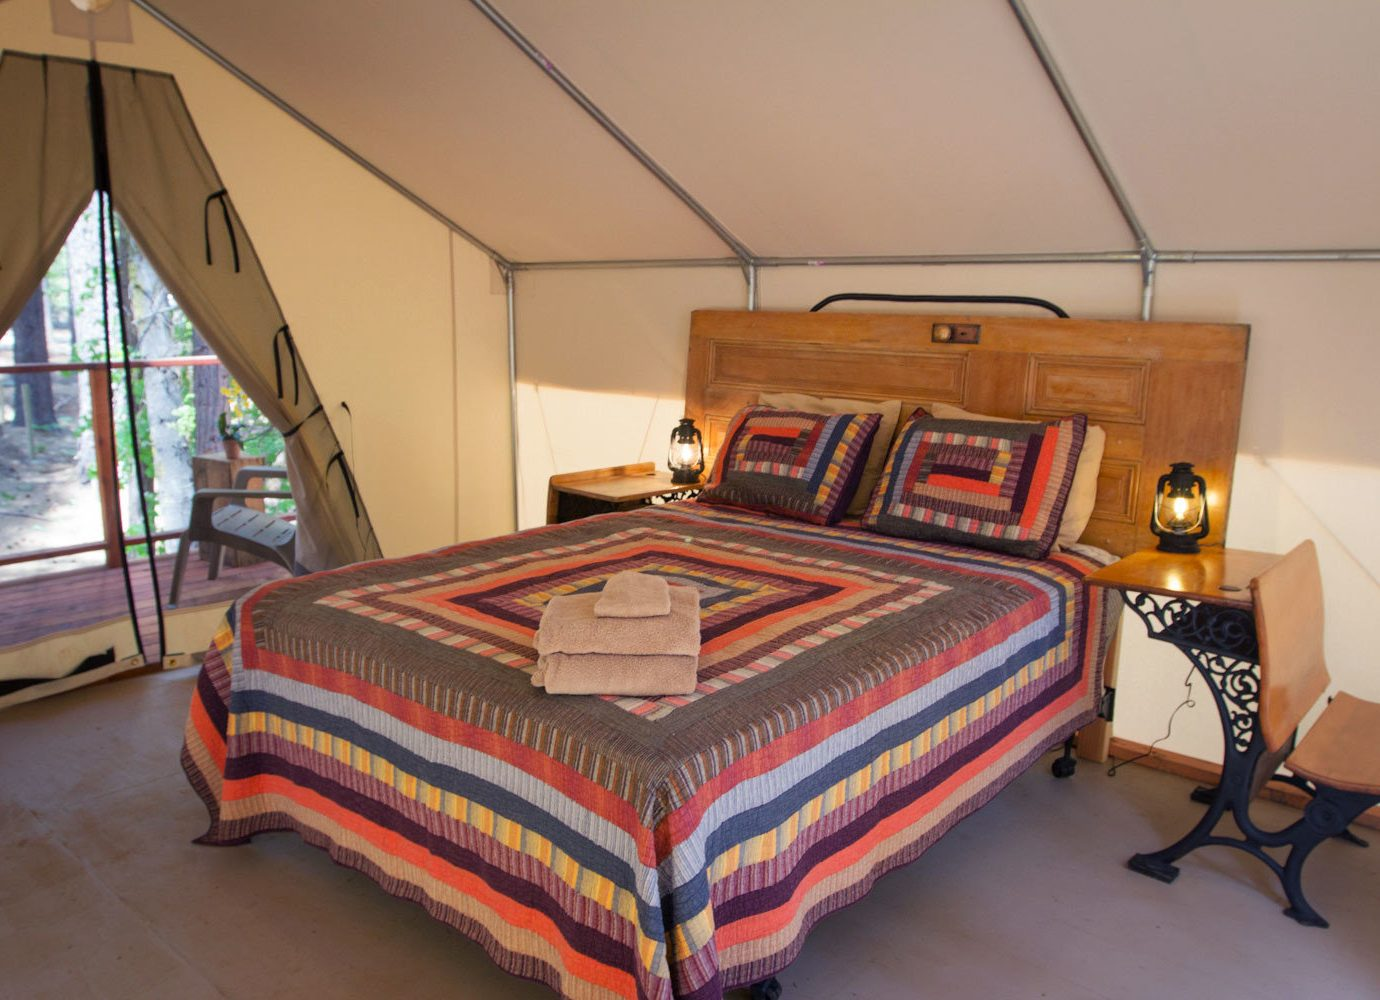 Glamping Luxury Travel Outdoors + Adventure floor indoor wall room Bedroom property bed furniture bed sheet cottage interior design